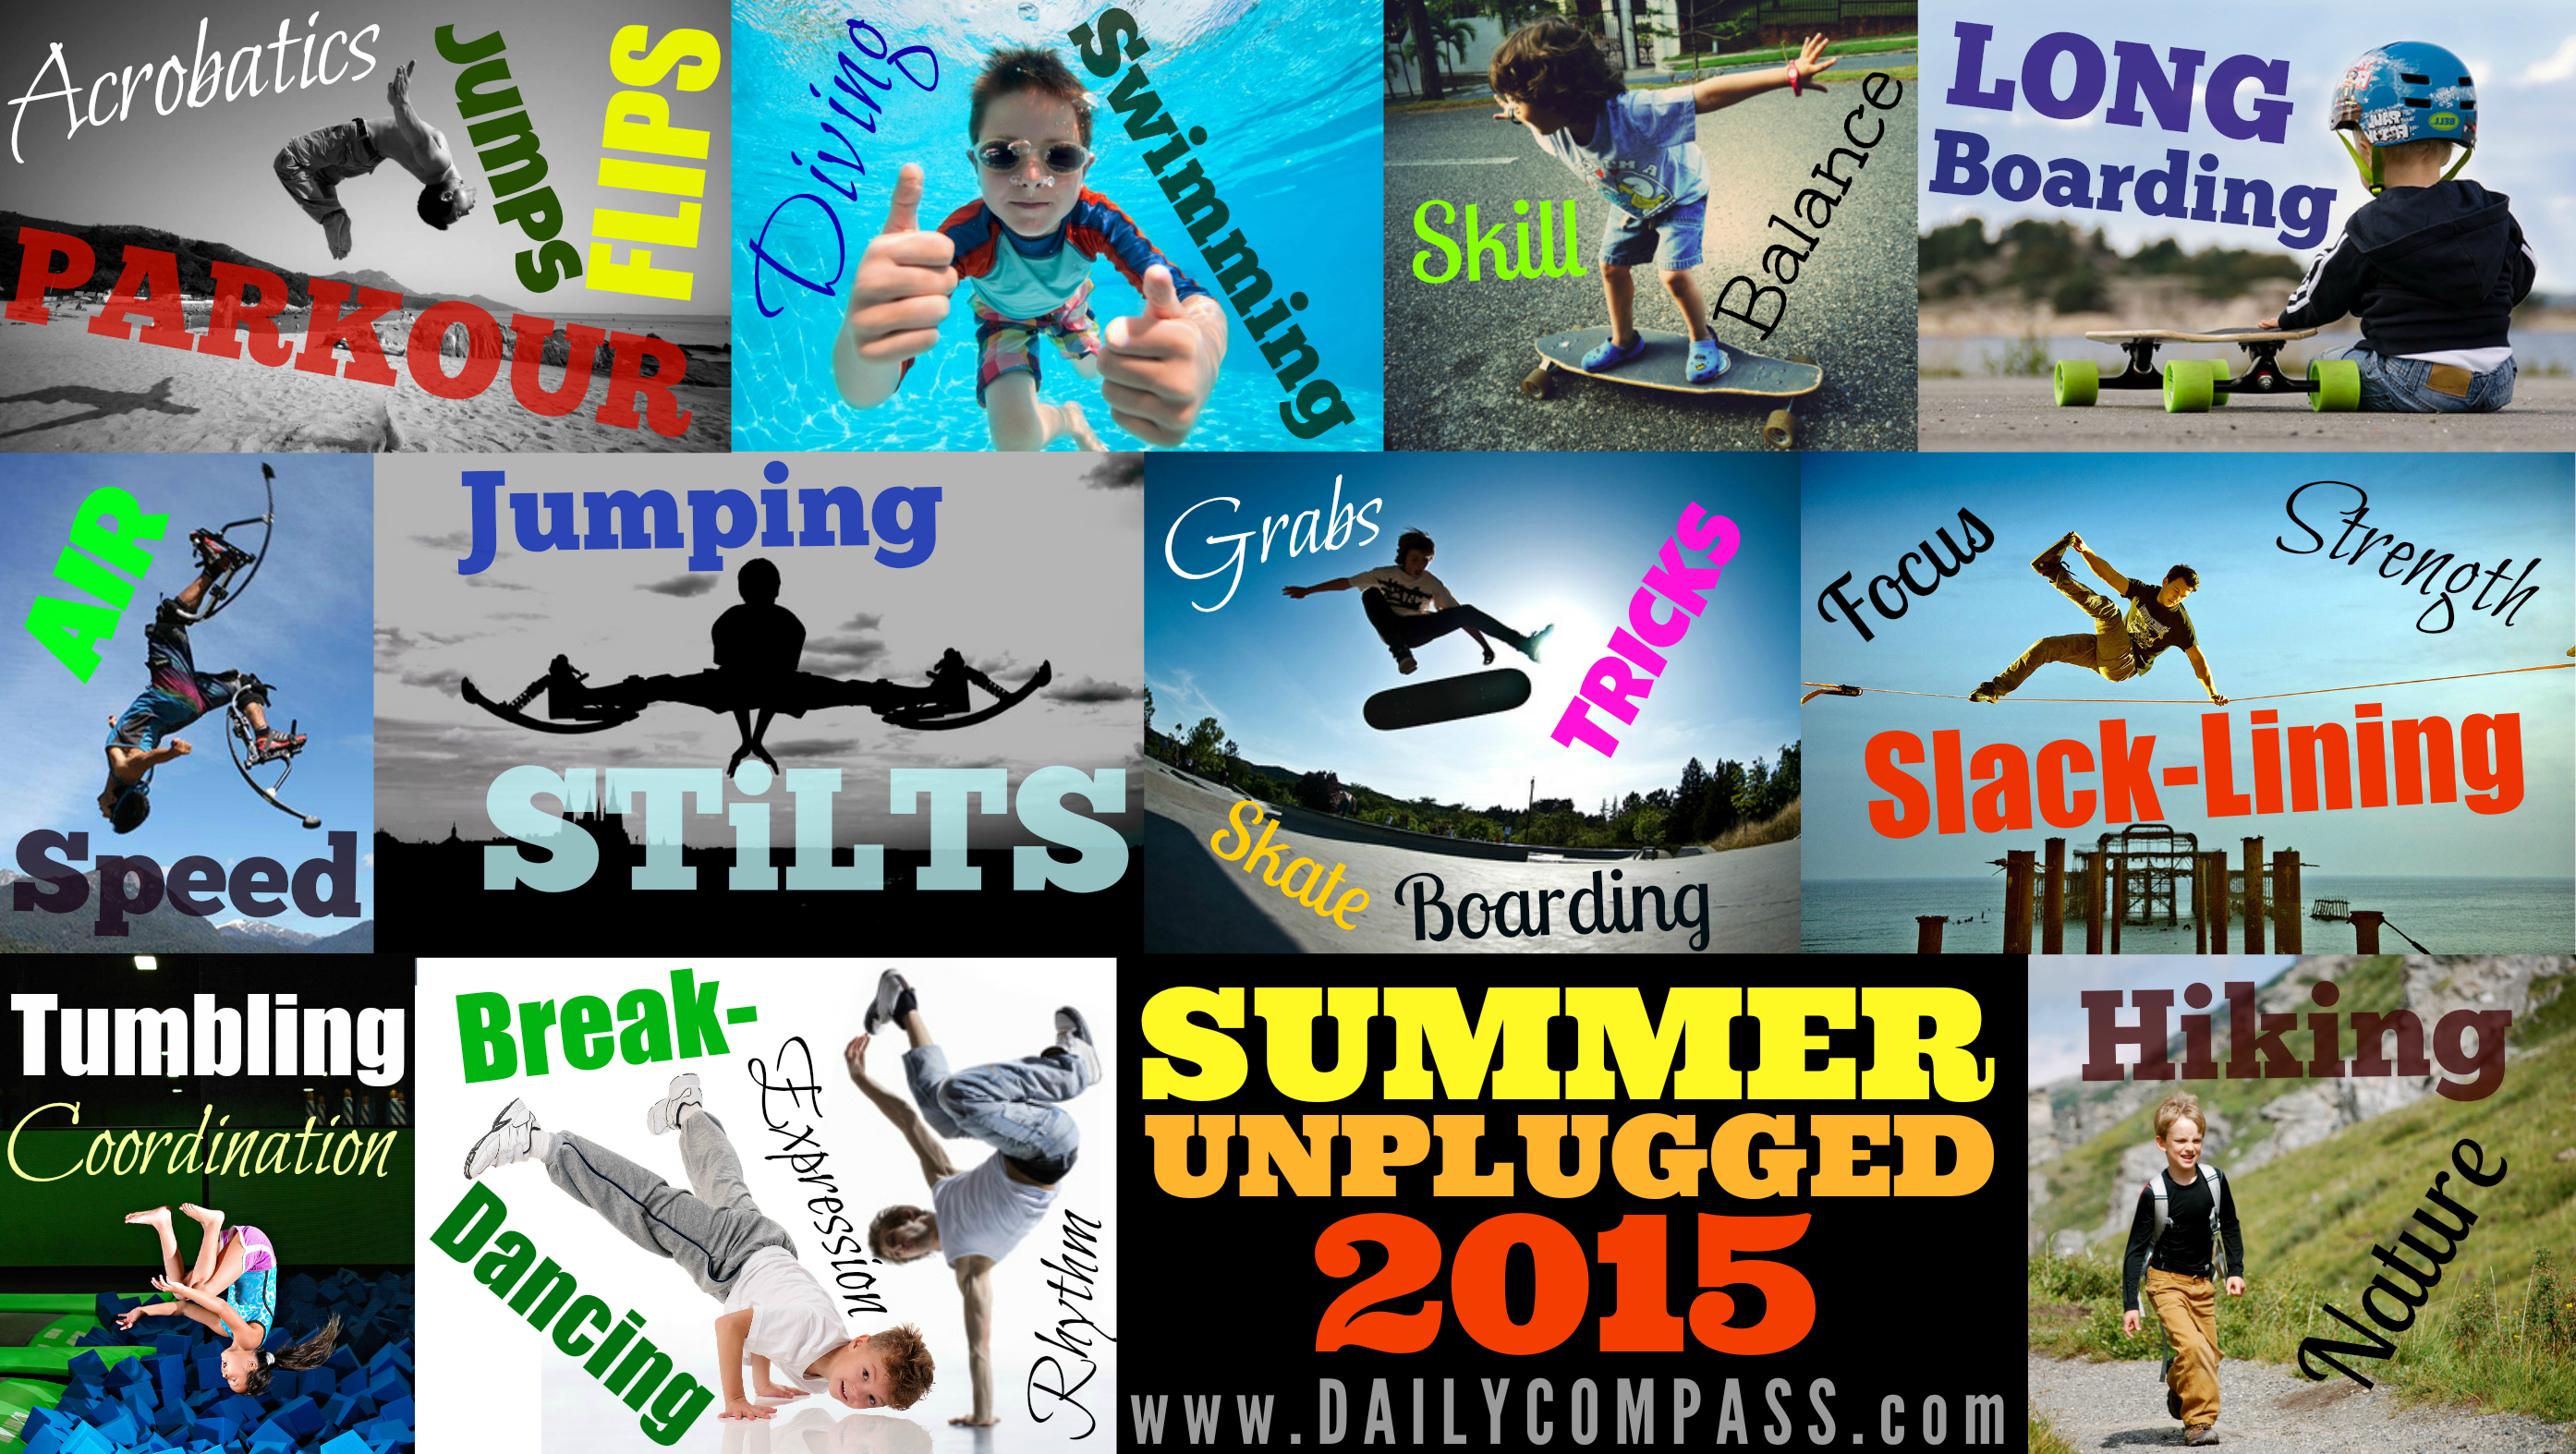 SUMMER UNPLUGGED 2015